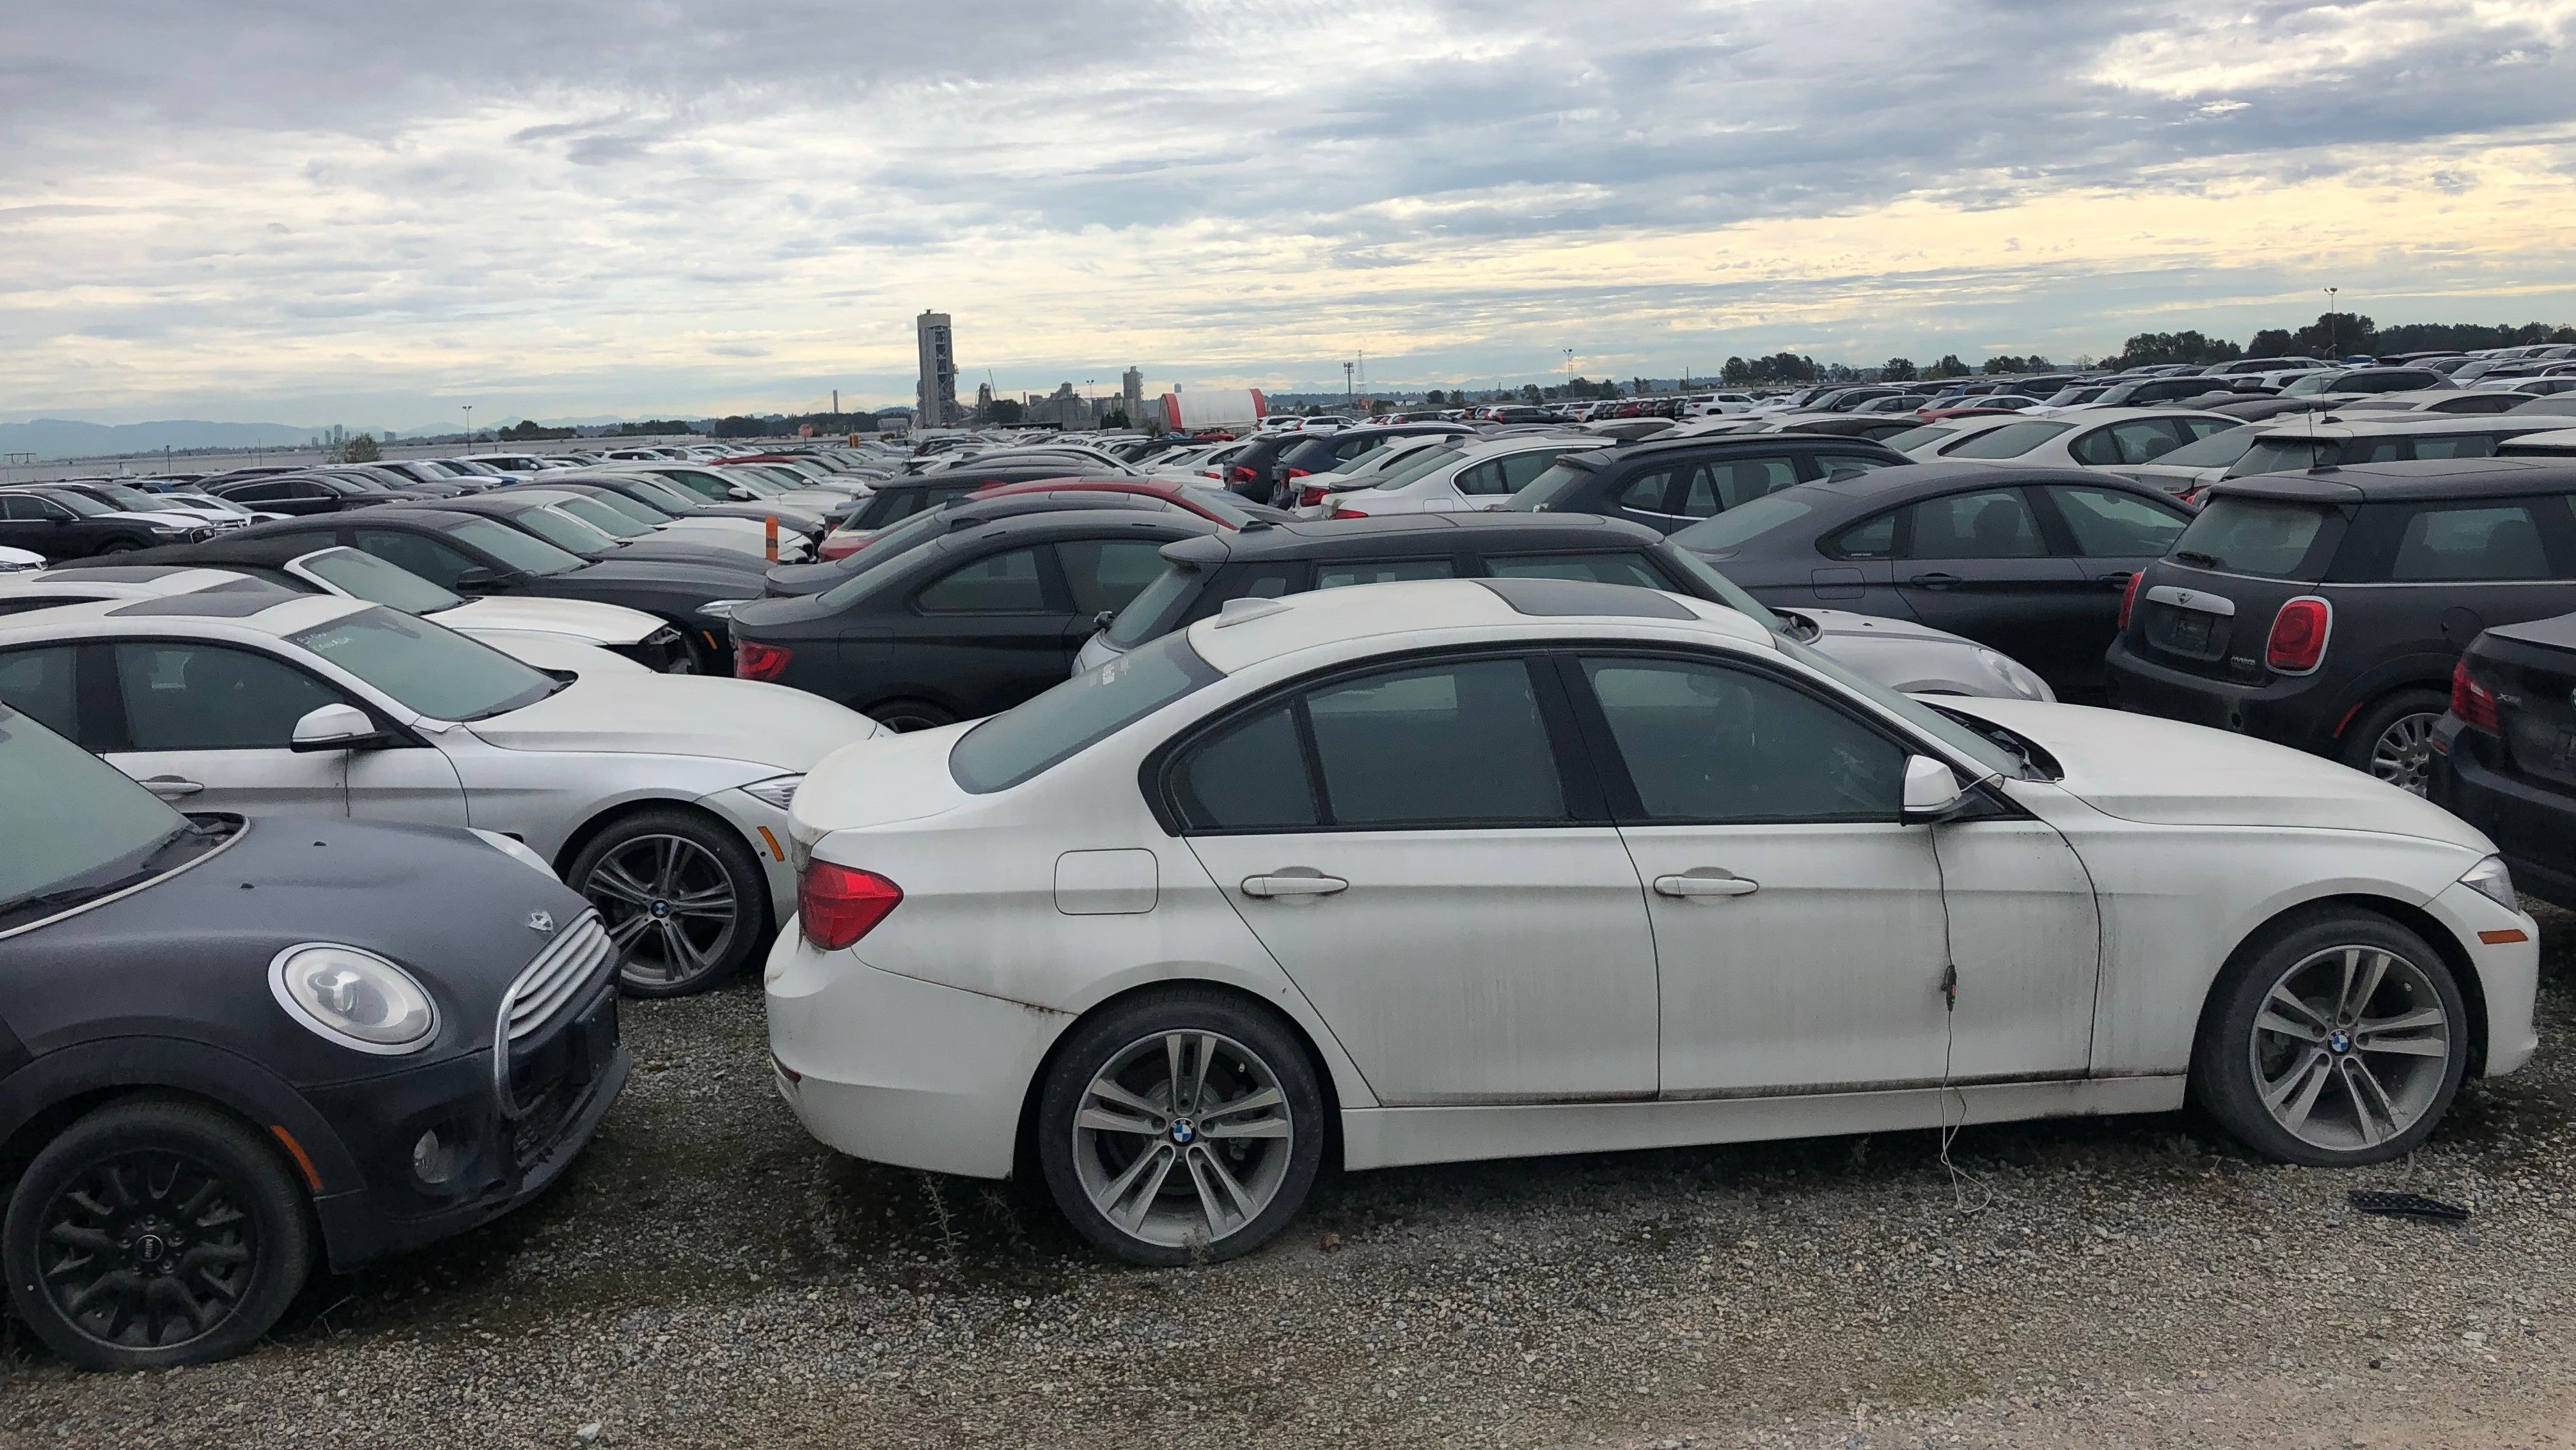 Nearly 3,000 Recalled Brand New BMWs And Minis Have Just Been Sitting In An Auction Yard For Over Four Years